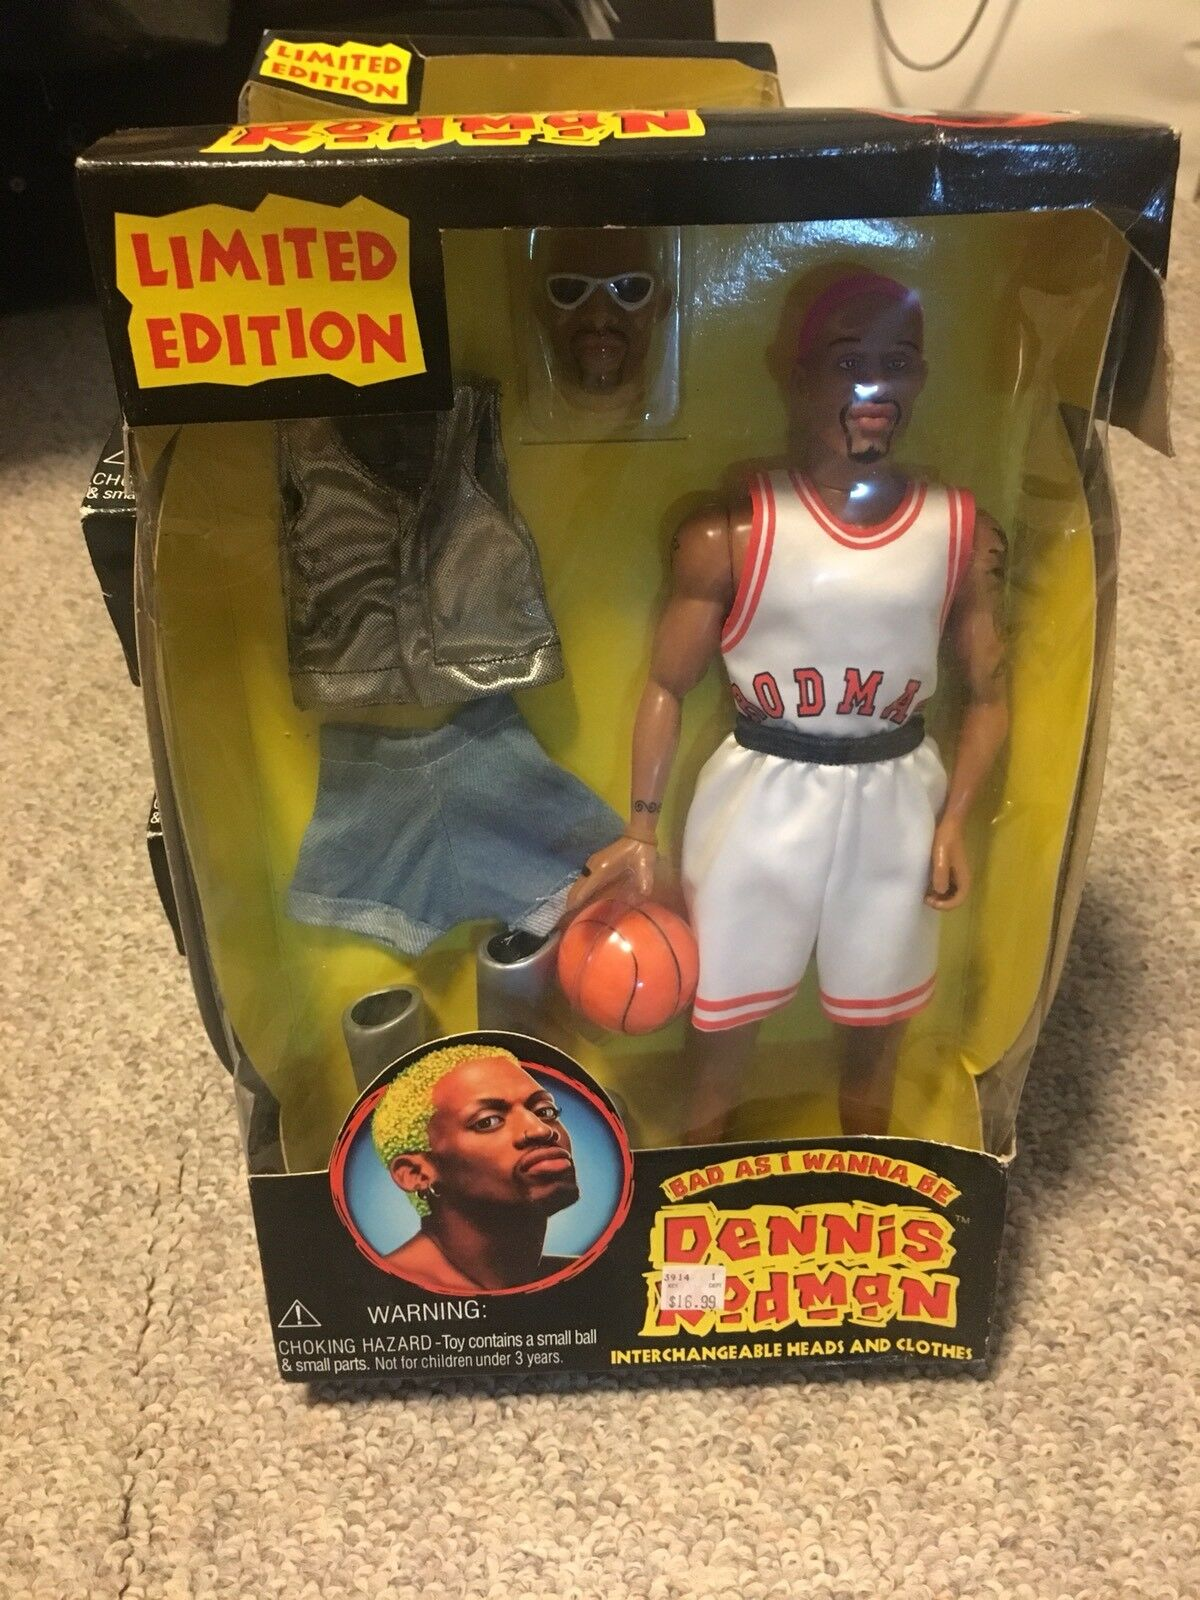 5 NIB Dennis Rodman Limited Edition Bad As I Wanna Be Action Figures. All 5